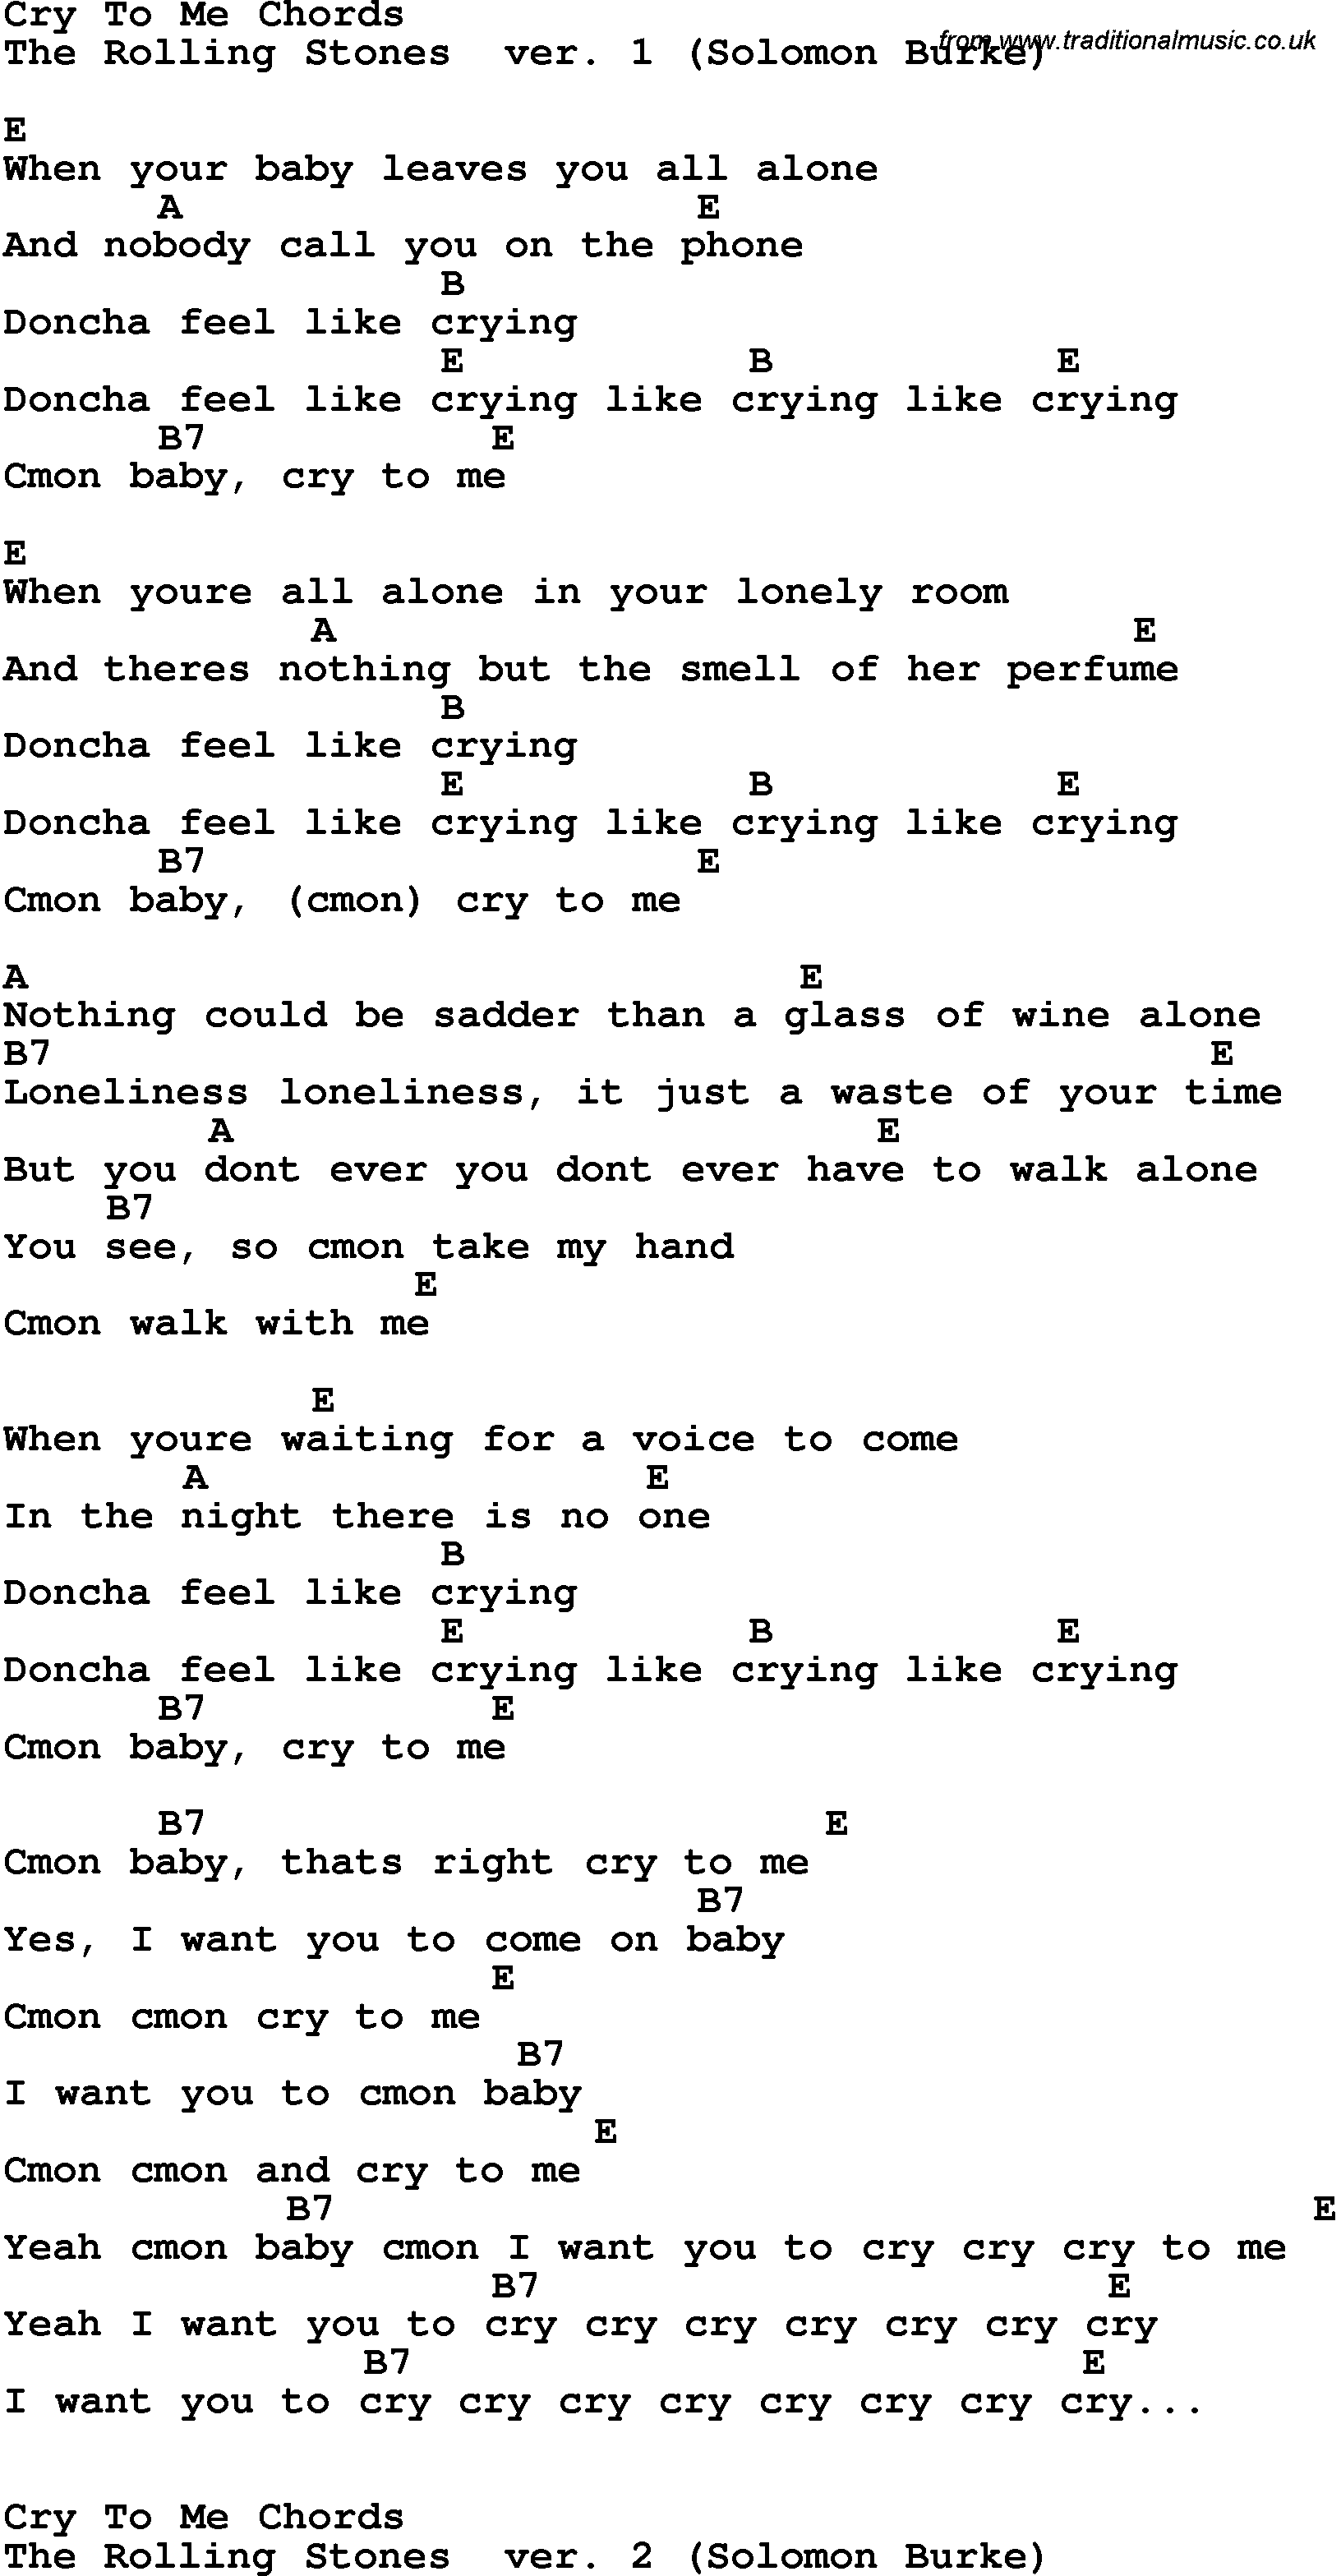 Song Lyrics With Guitar Chords For Cry To Me